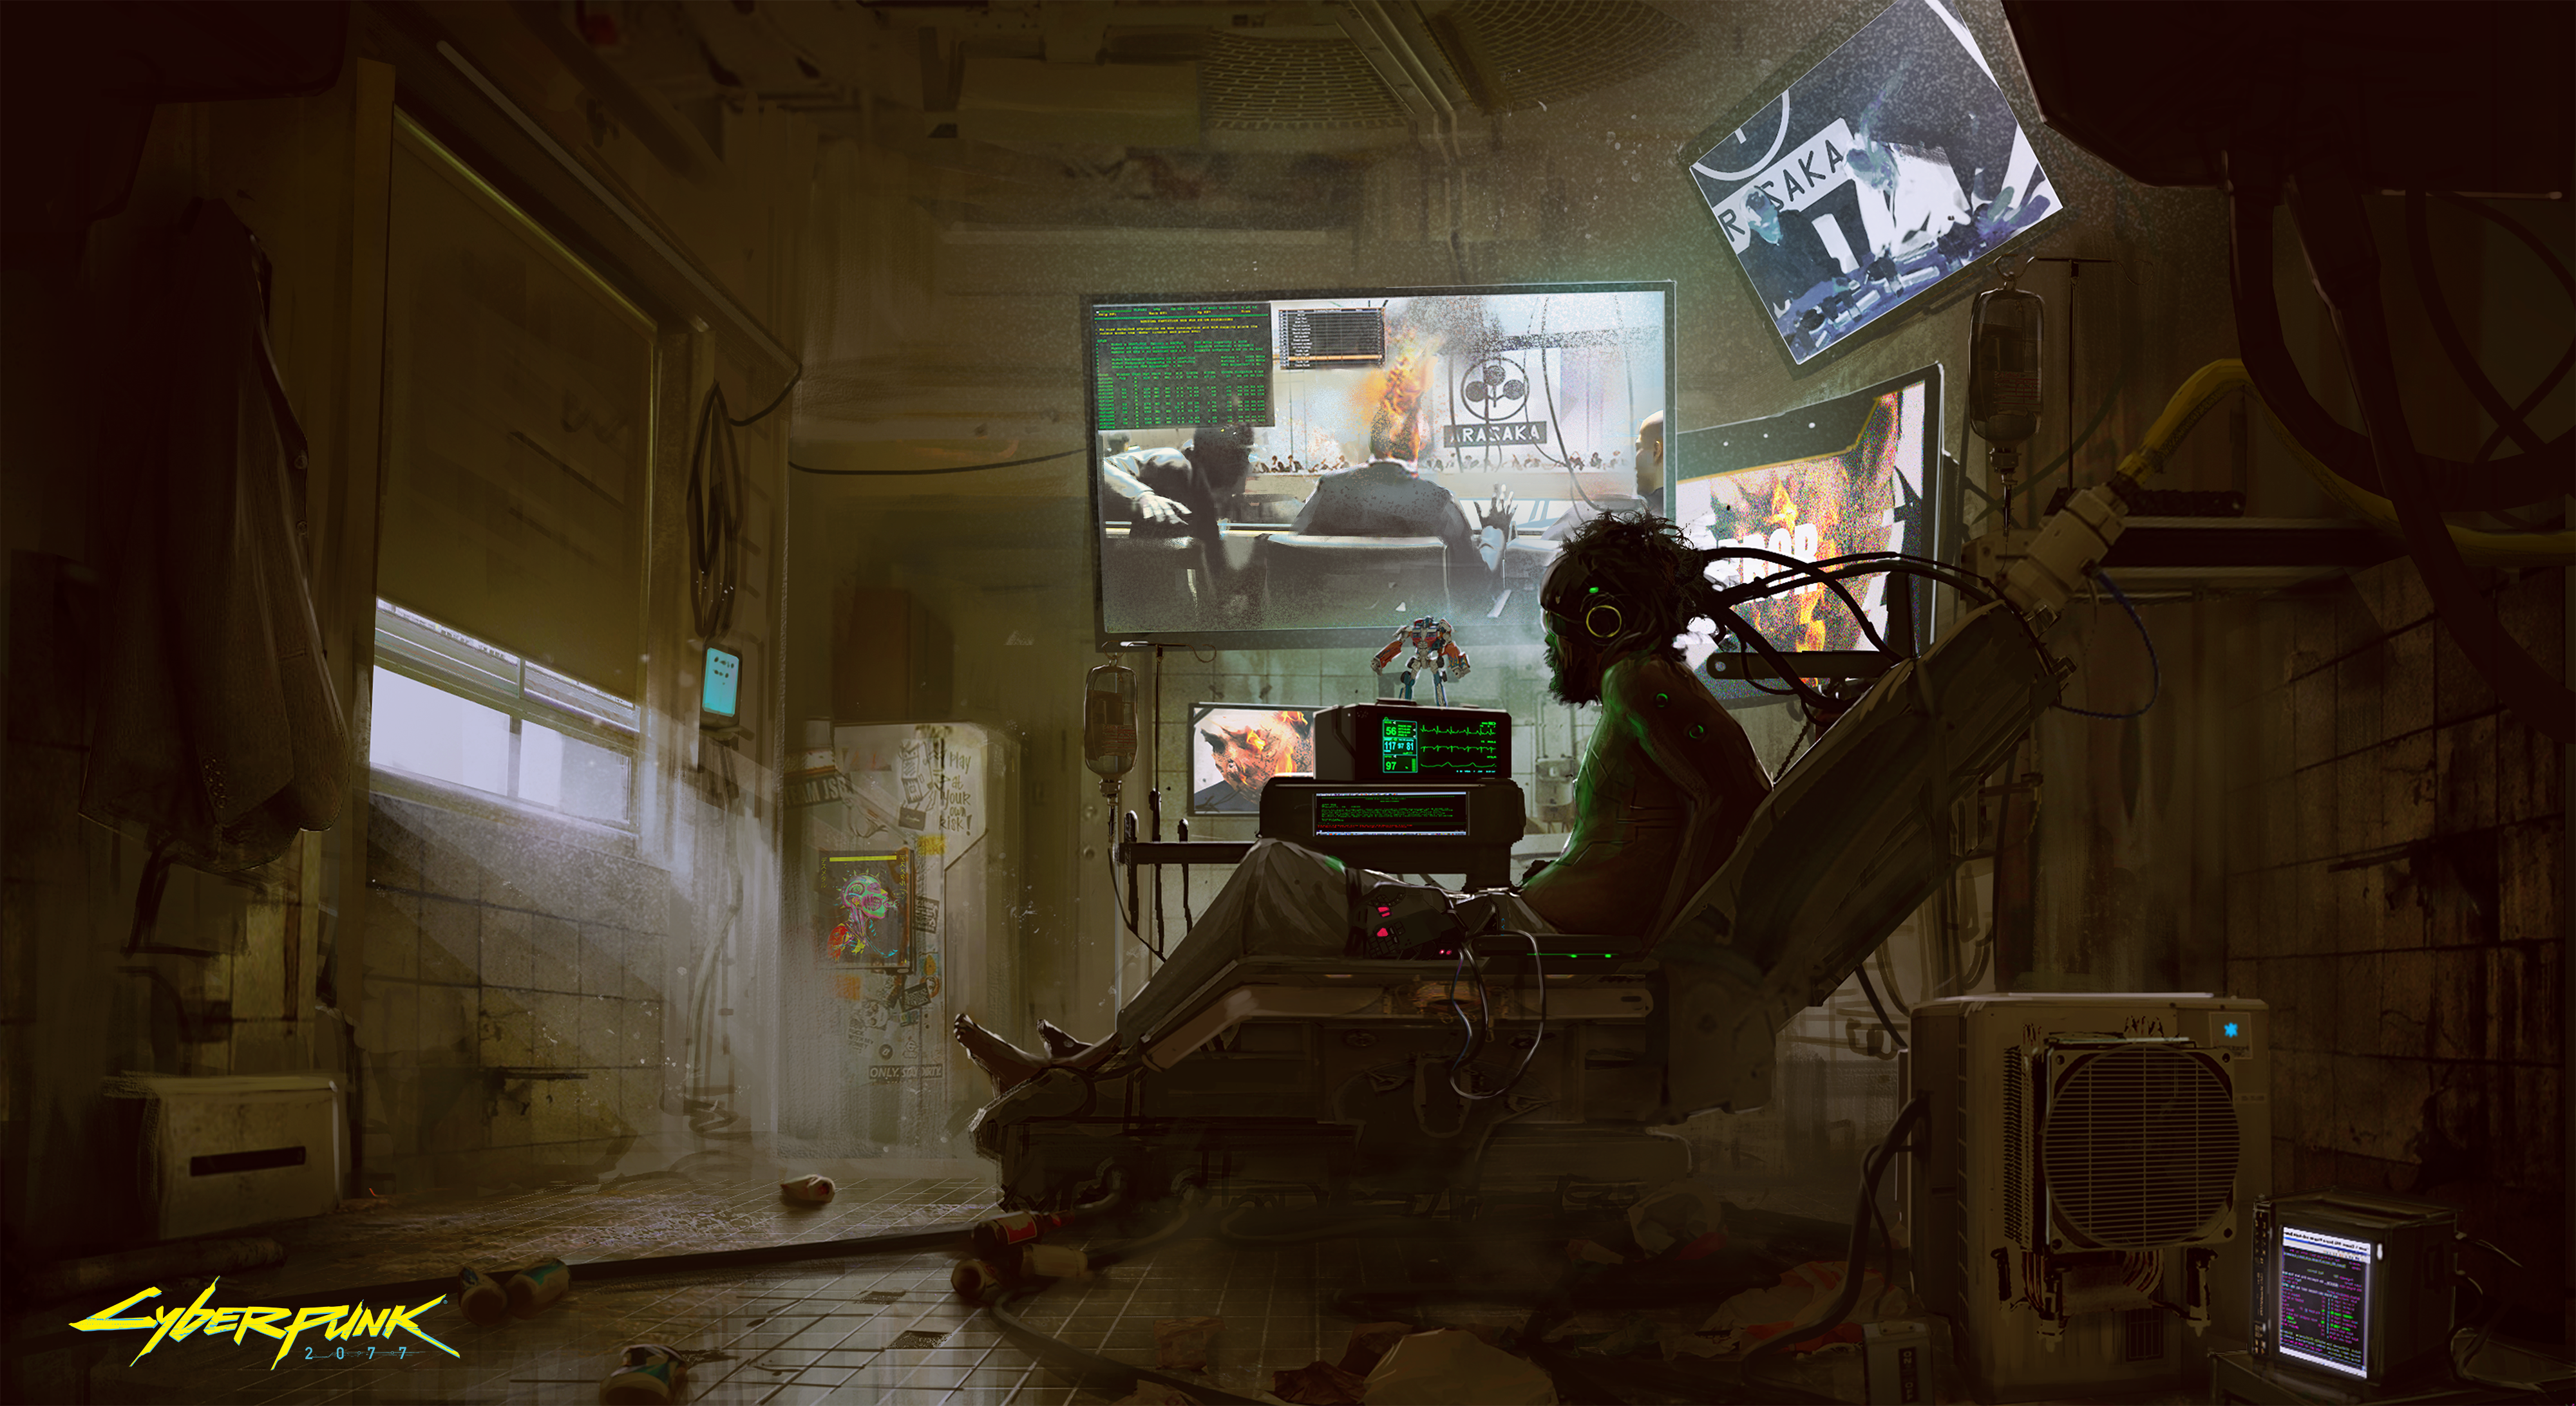 Concept Art Cyberpunk 2077 From The Creators Of The Witcher 3 Wild Hunt